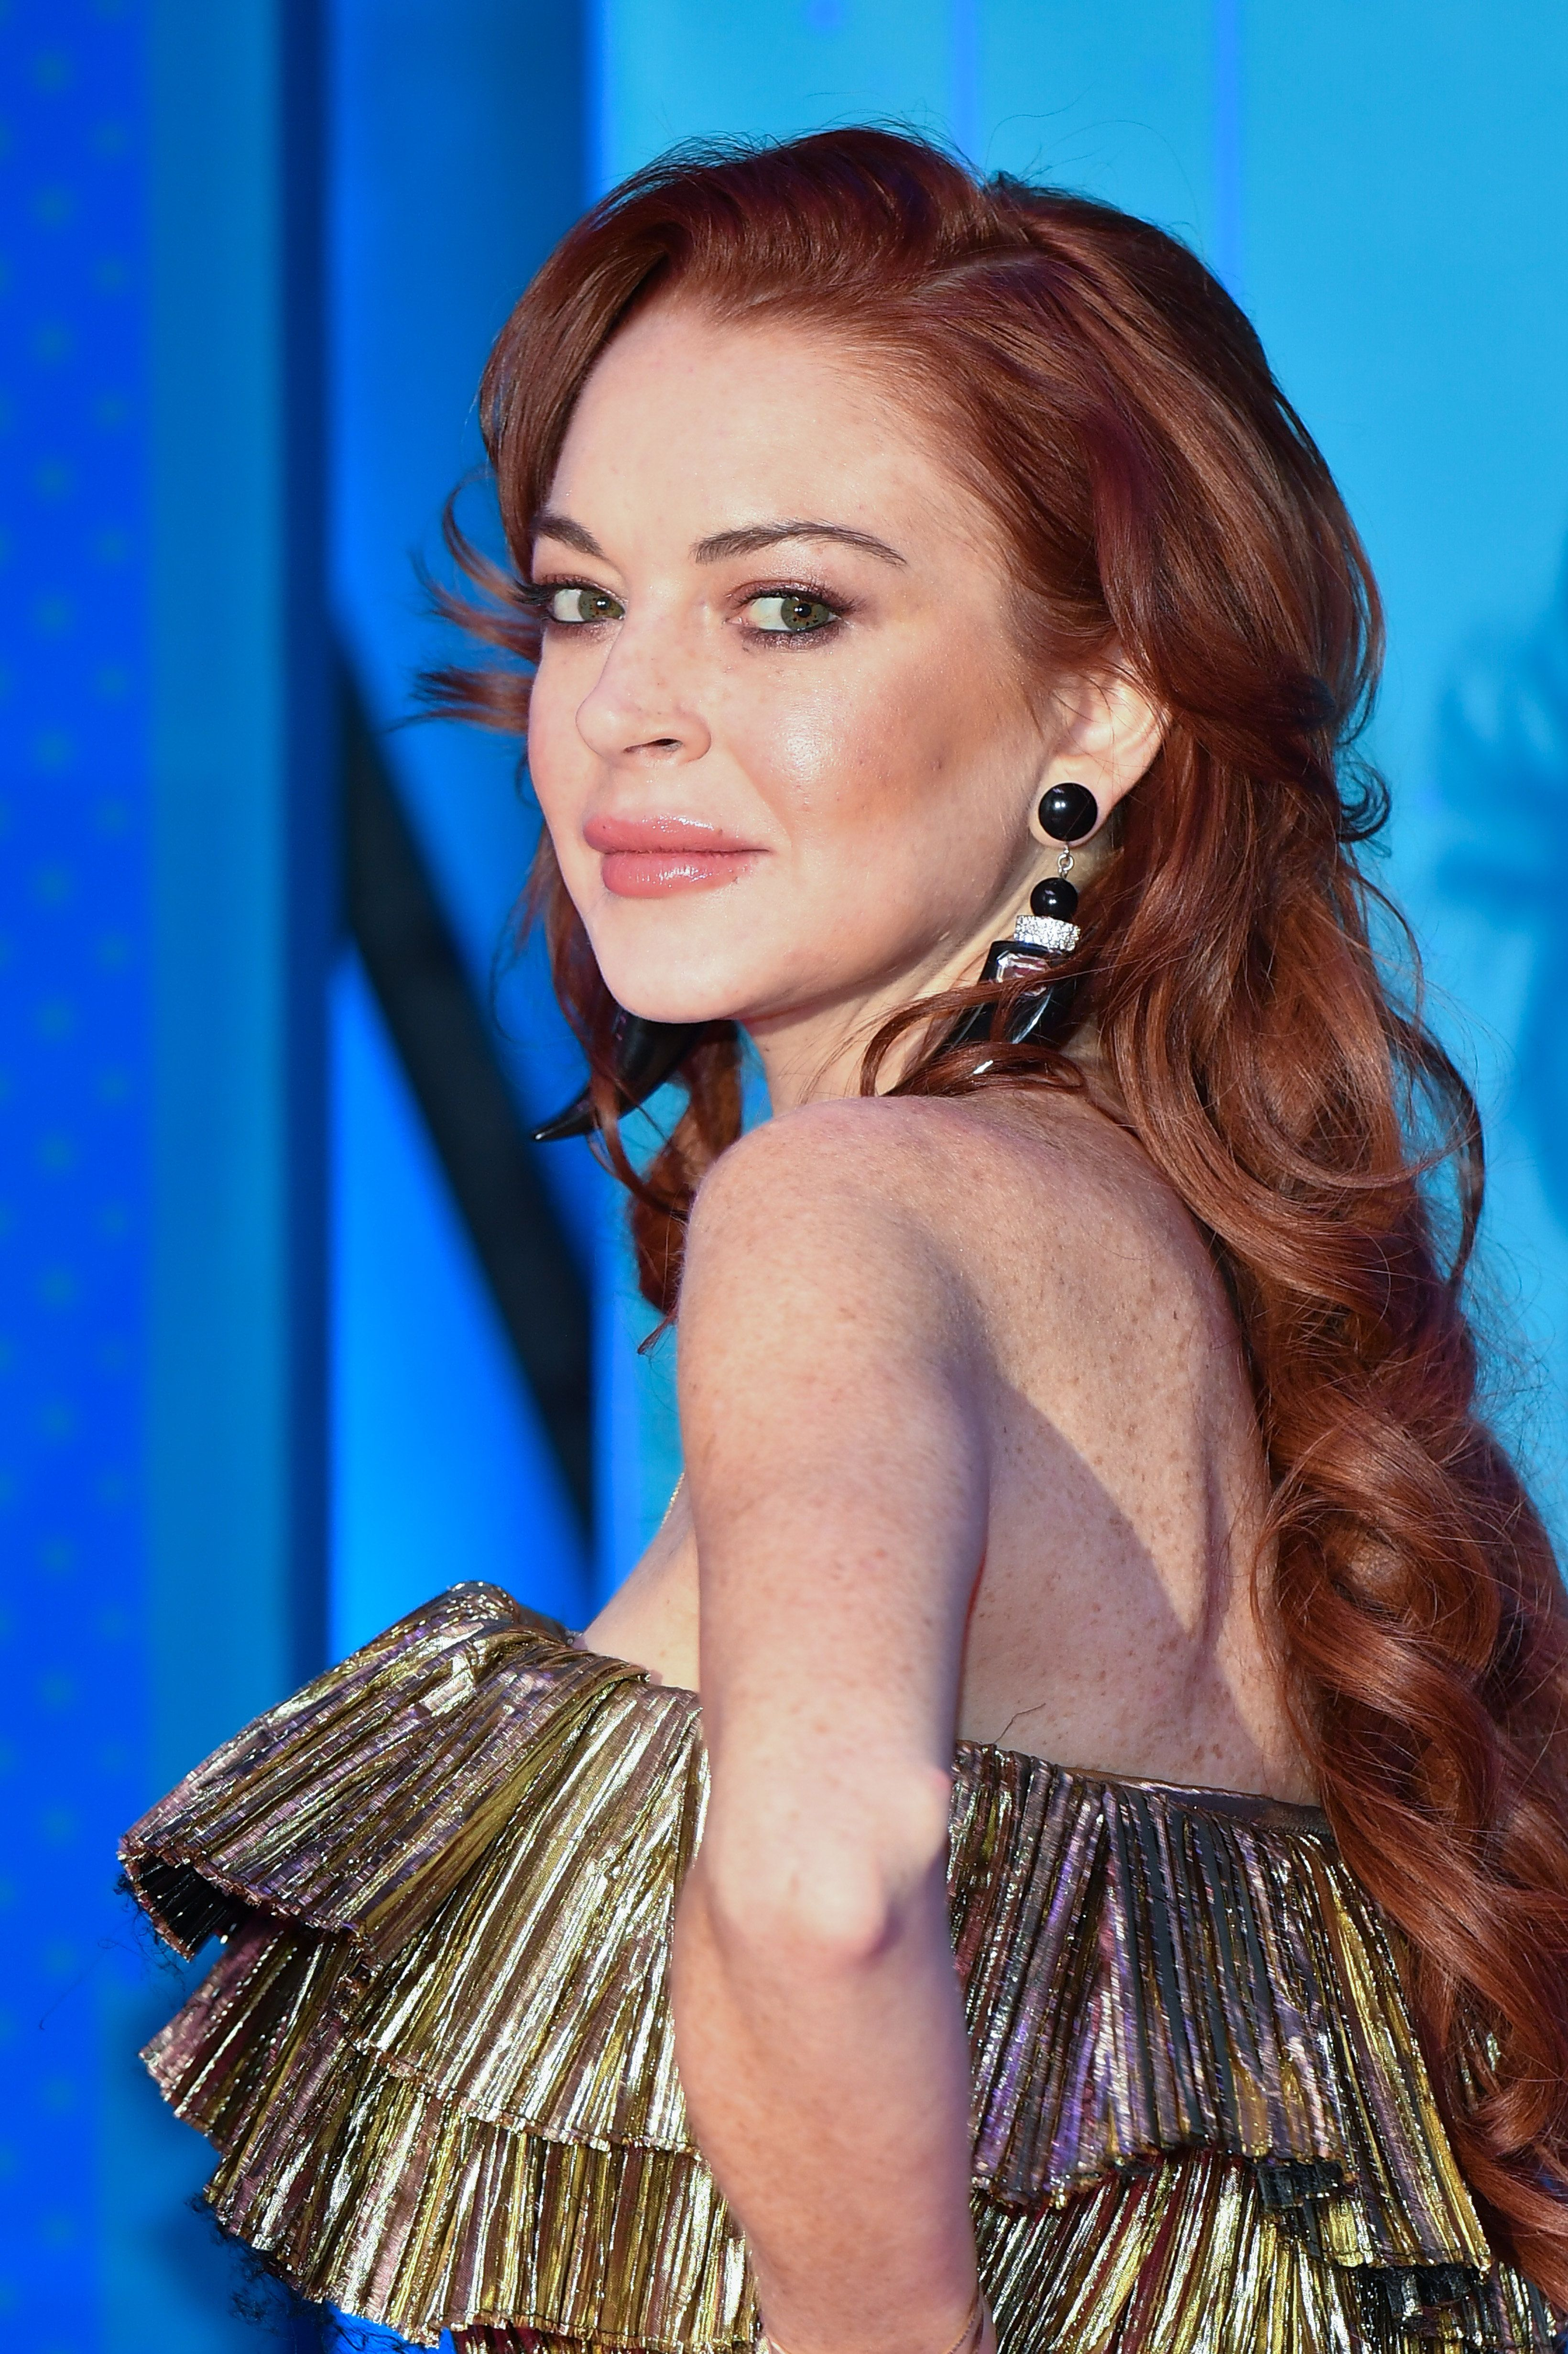 BILBAO, SPAIN - NOVEMBER 04:  Lindsay Lohan attends the MTV EMAs 2018 on November 4, 2018 in Bilbao, Spain.  (Photo by Stephane Cardinale - Corbis/Corbis via Getty Images)